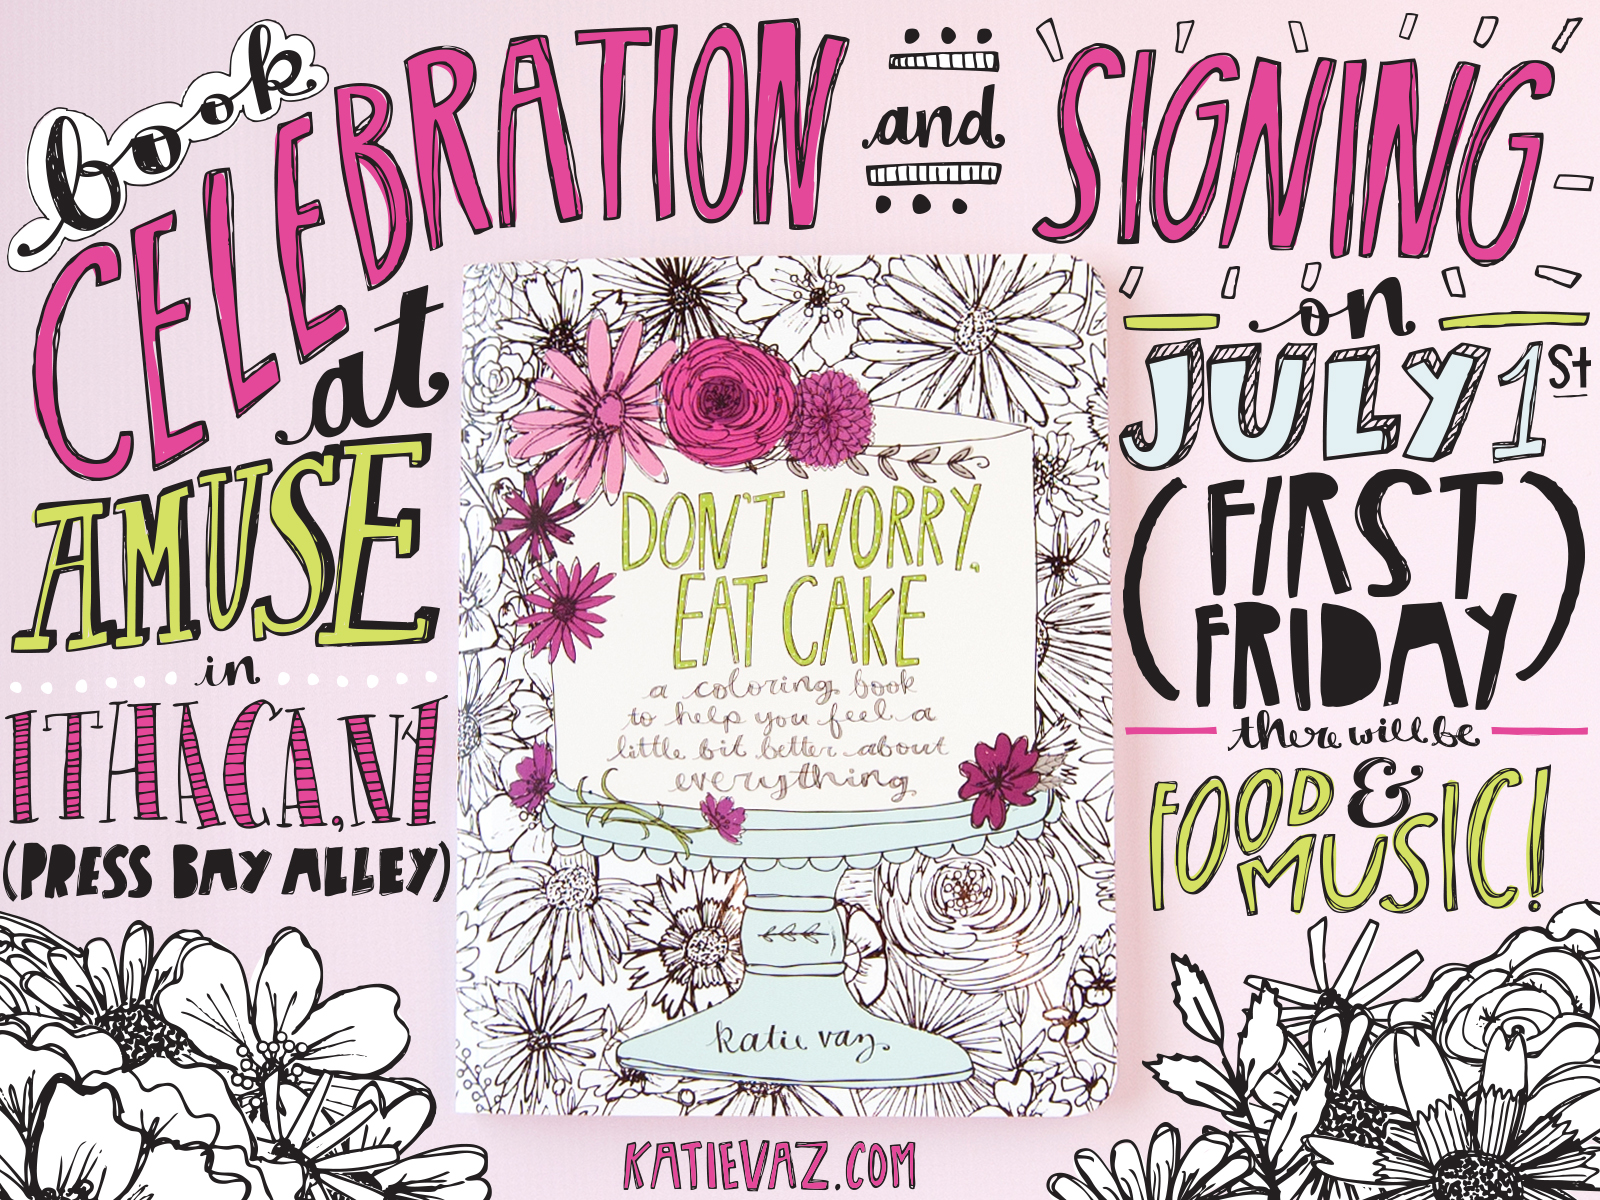 Don't Worry, Eat Cake | Ithaca Signing